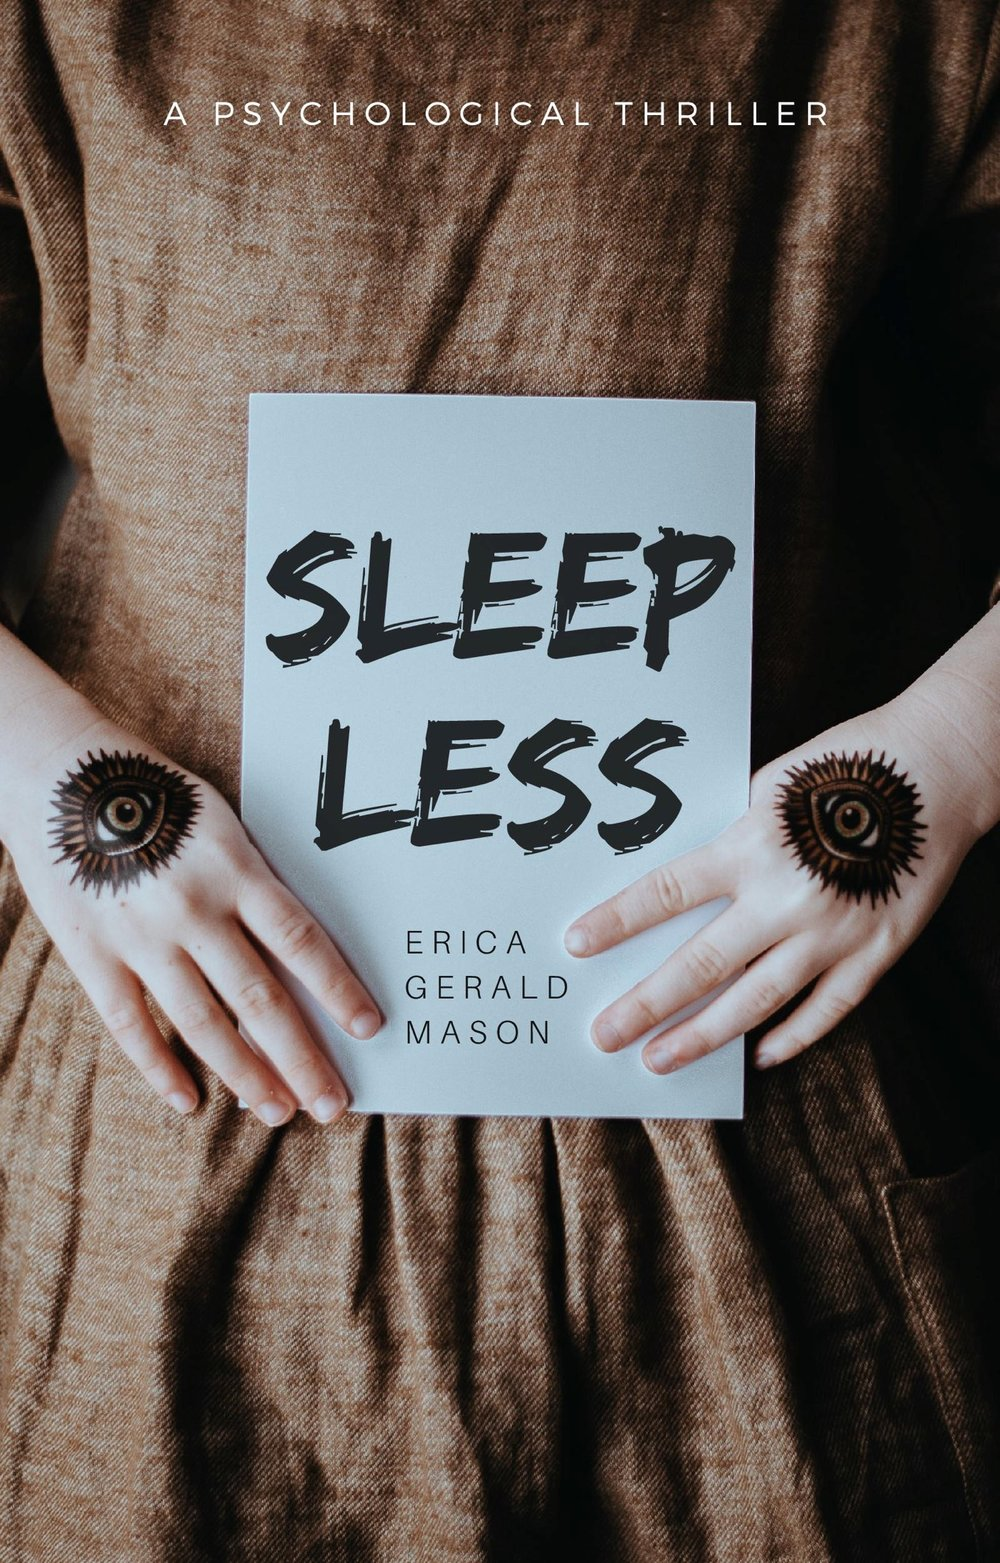 Sleepless by Erica Gerald Mason